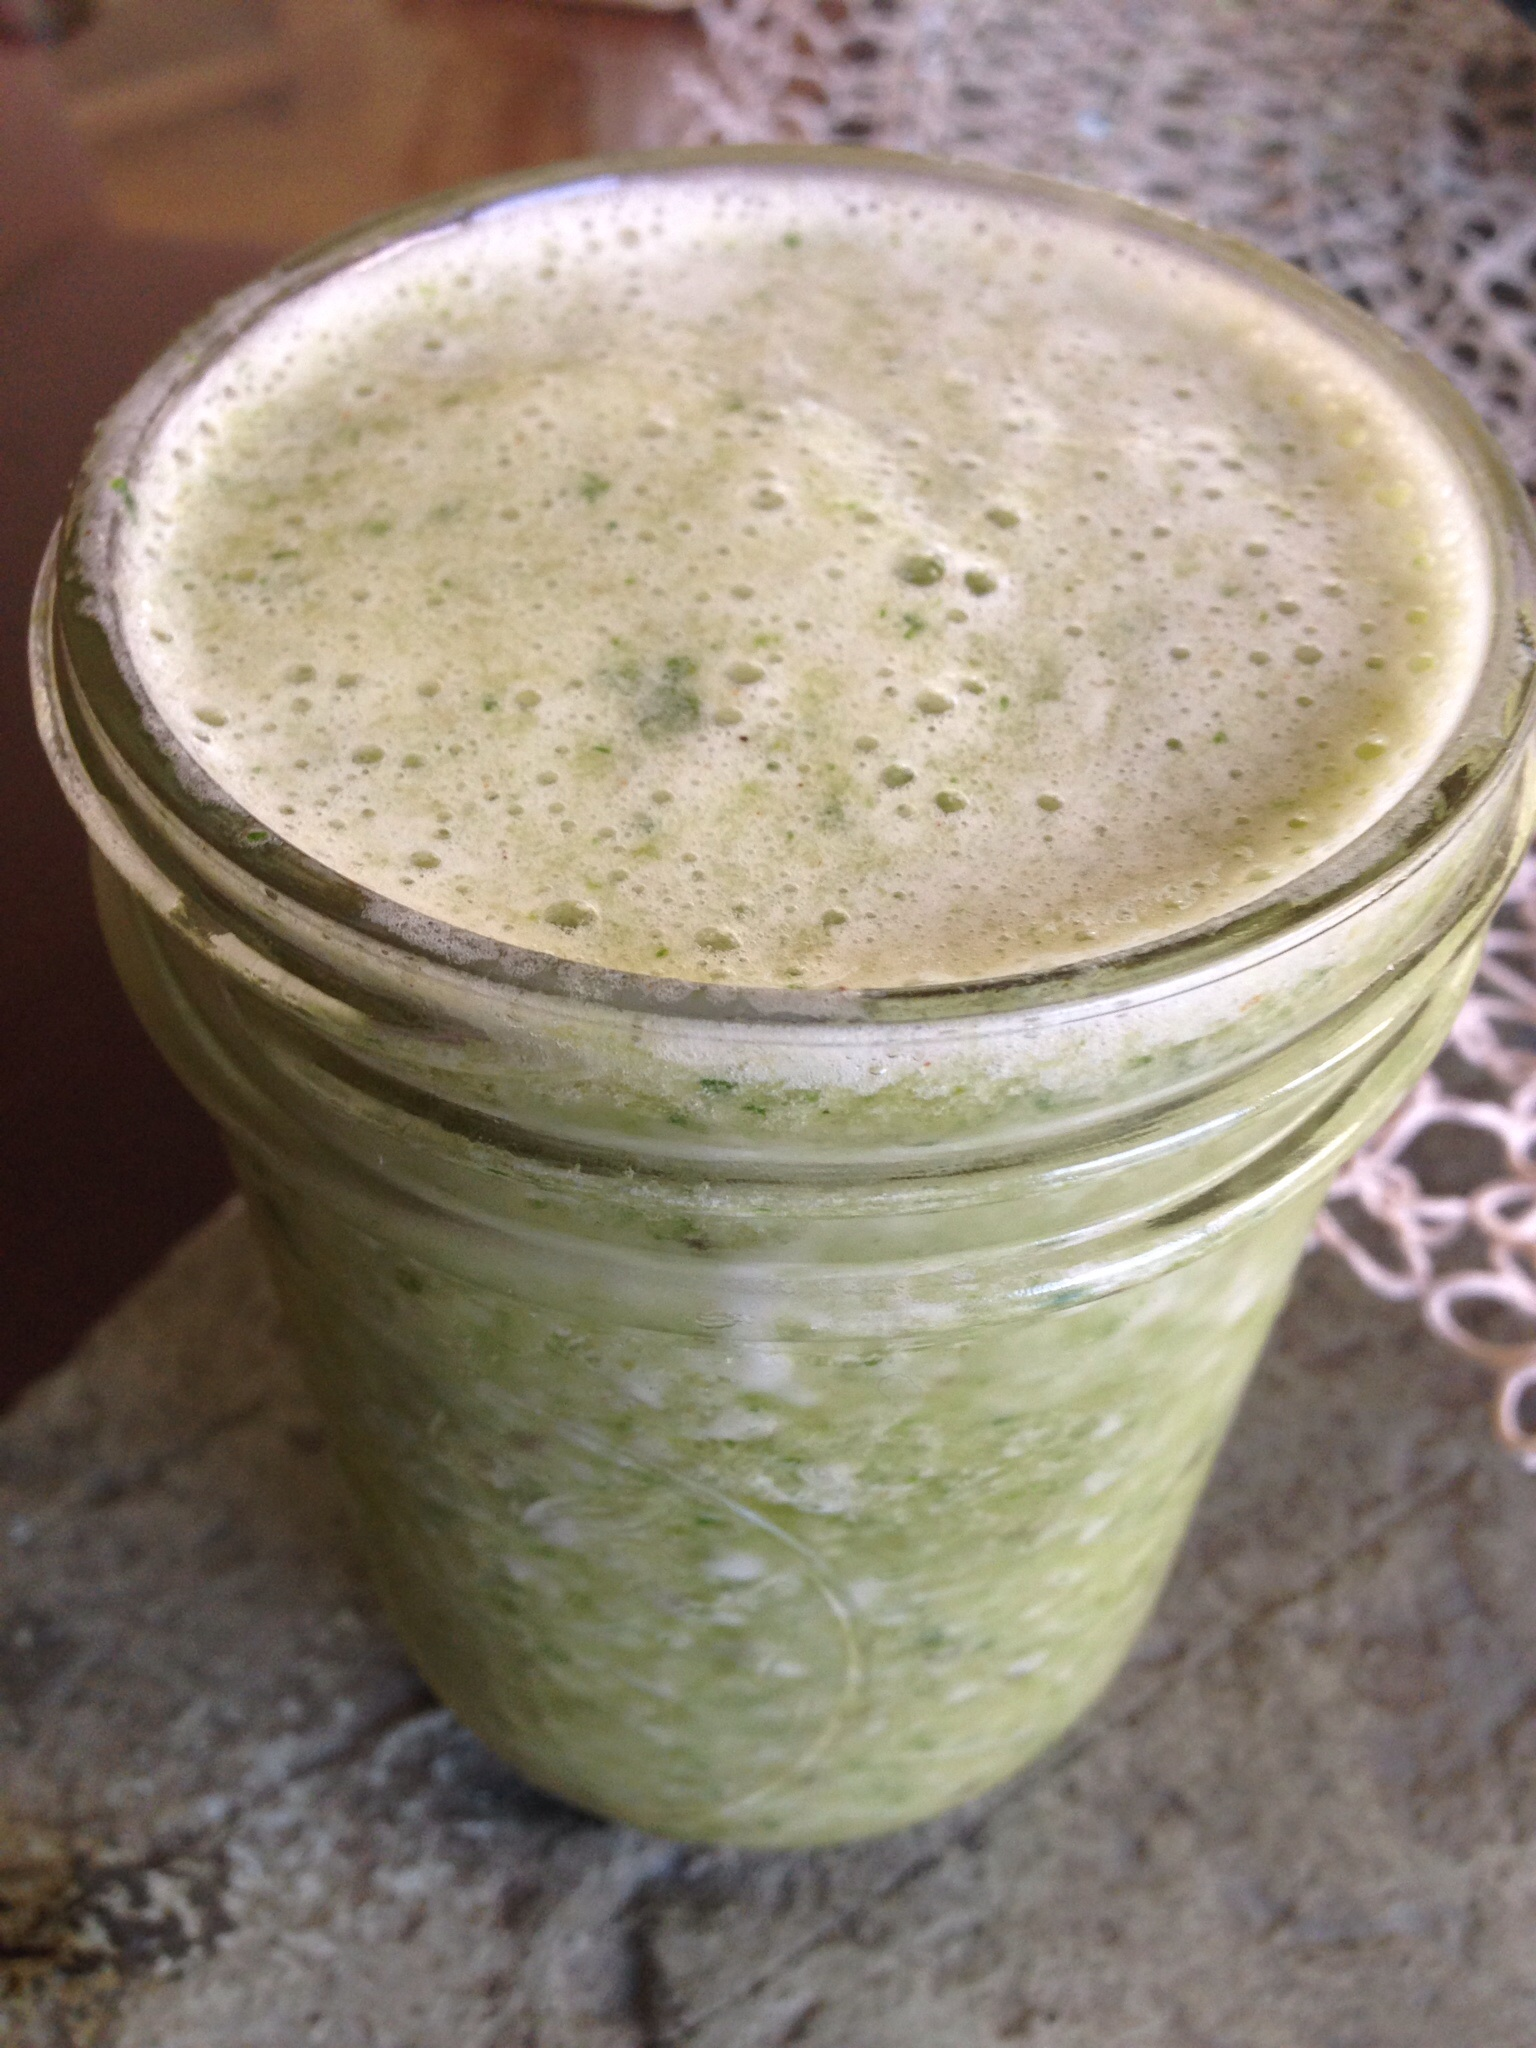 Greeen Smoothie